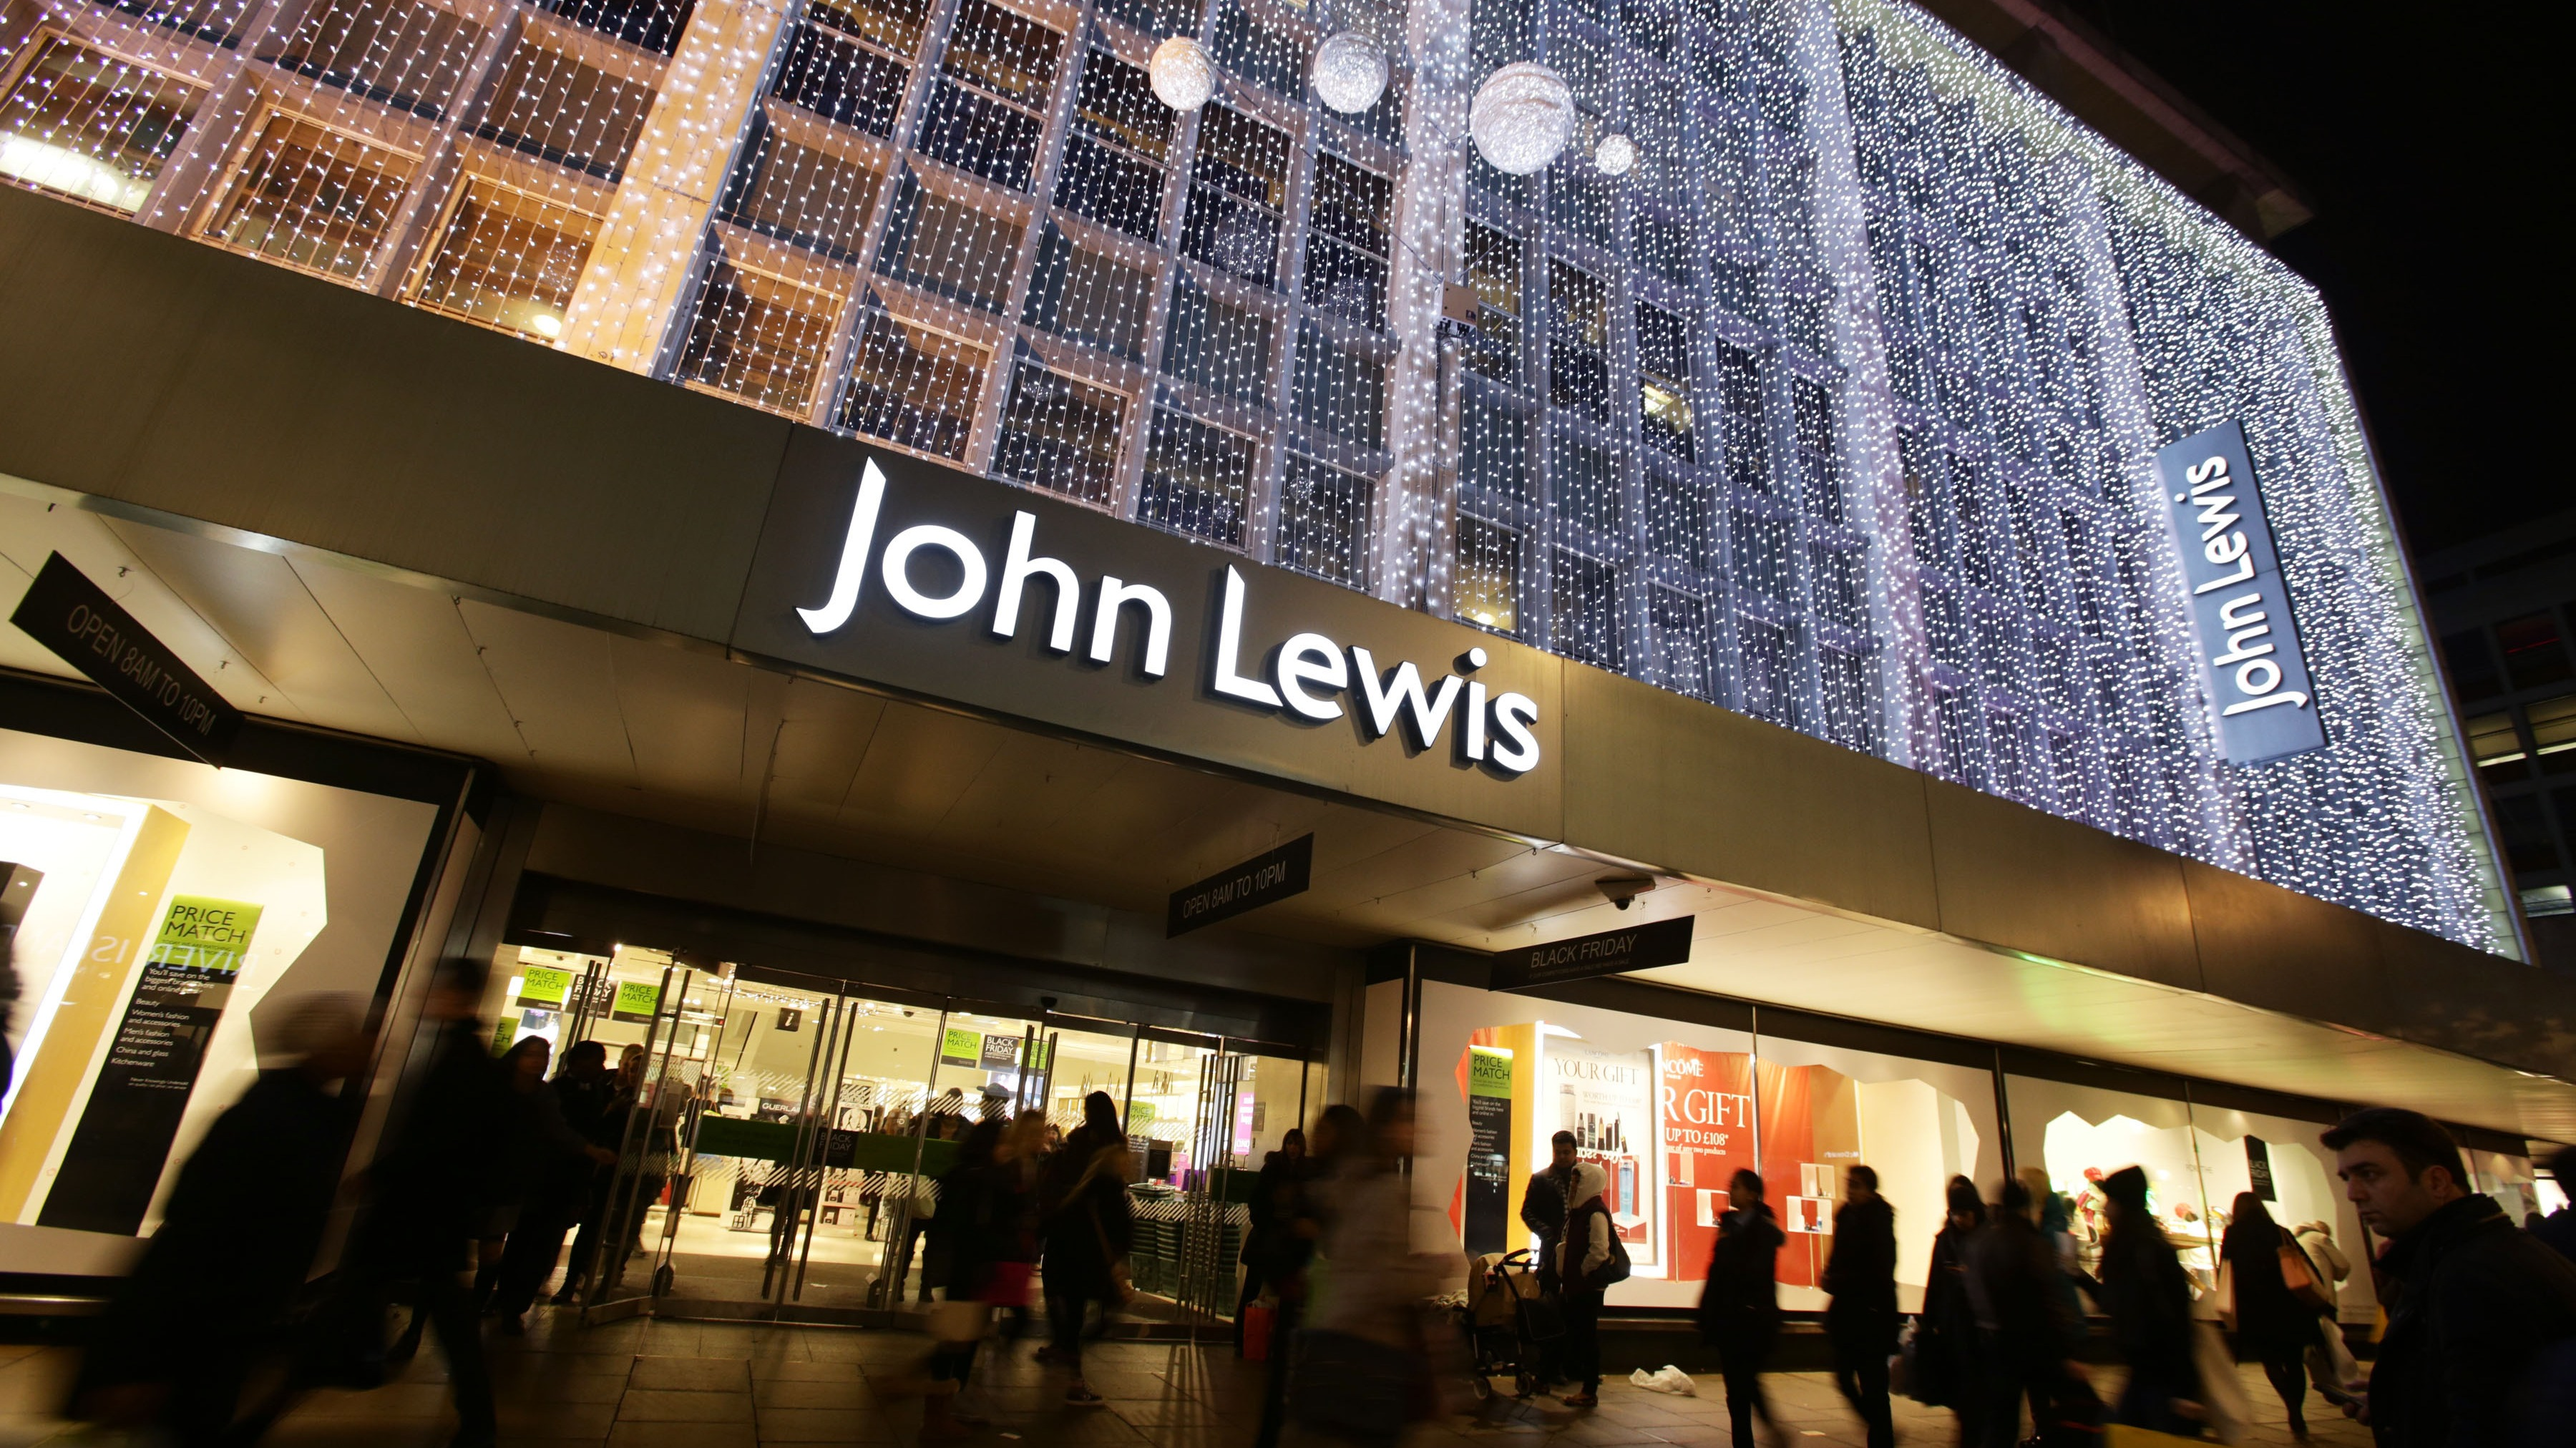 john lewis christmas sales boosted by online shopping itv news. Black Bedroom Furniture Sets. Home Design Ideas